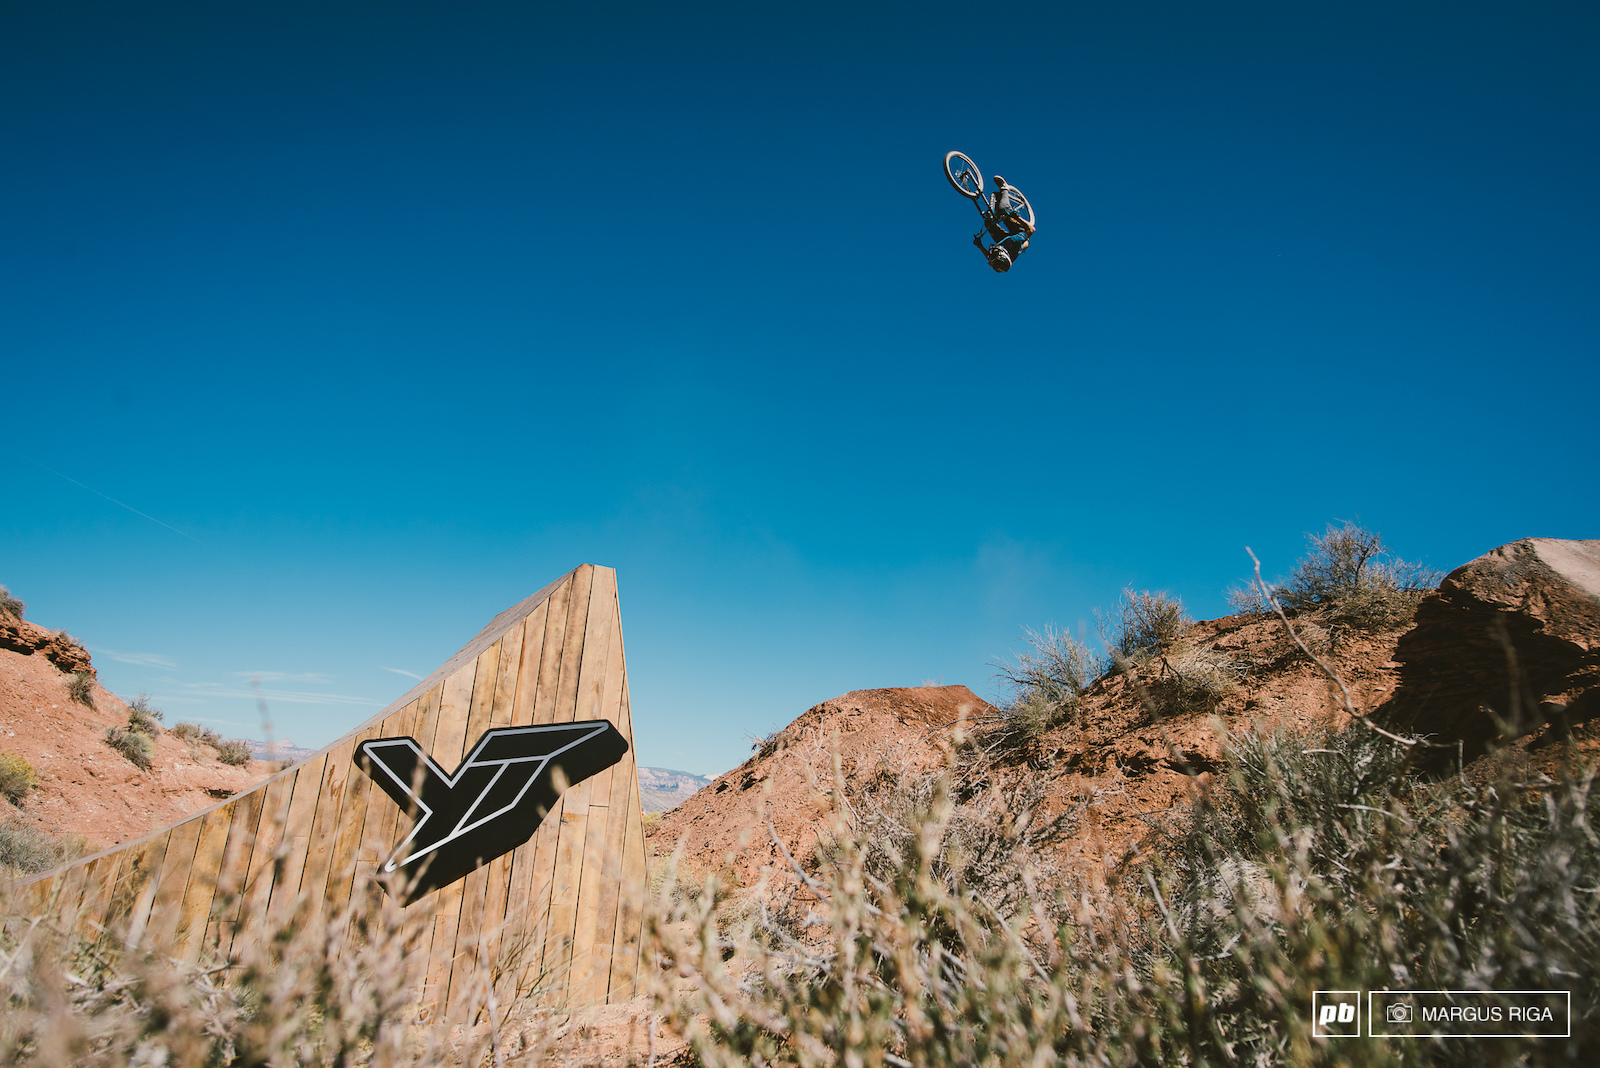 Reece Wallace flips the YT step-up.